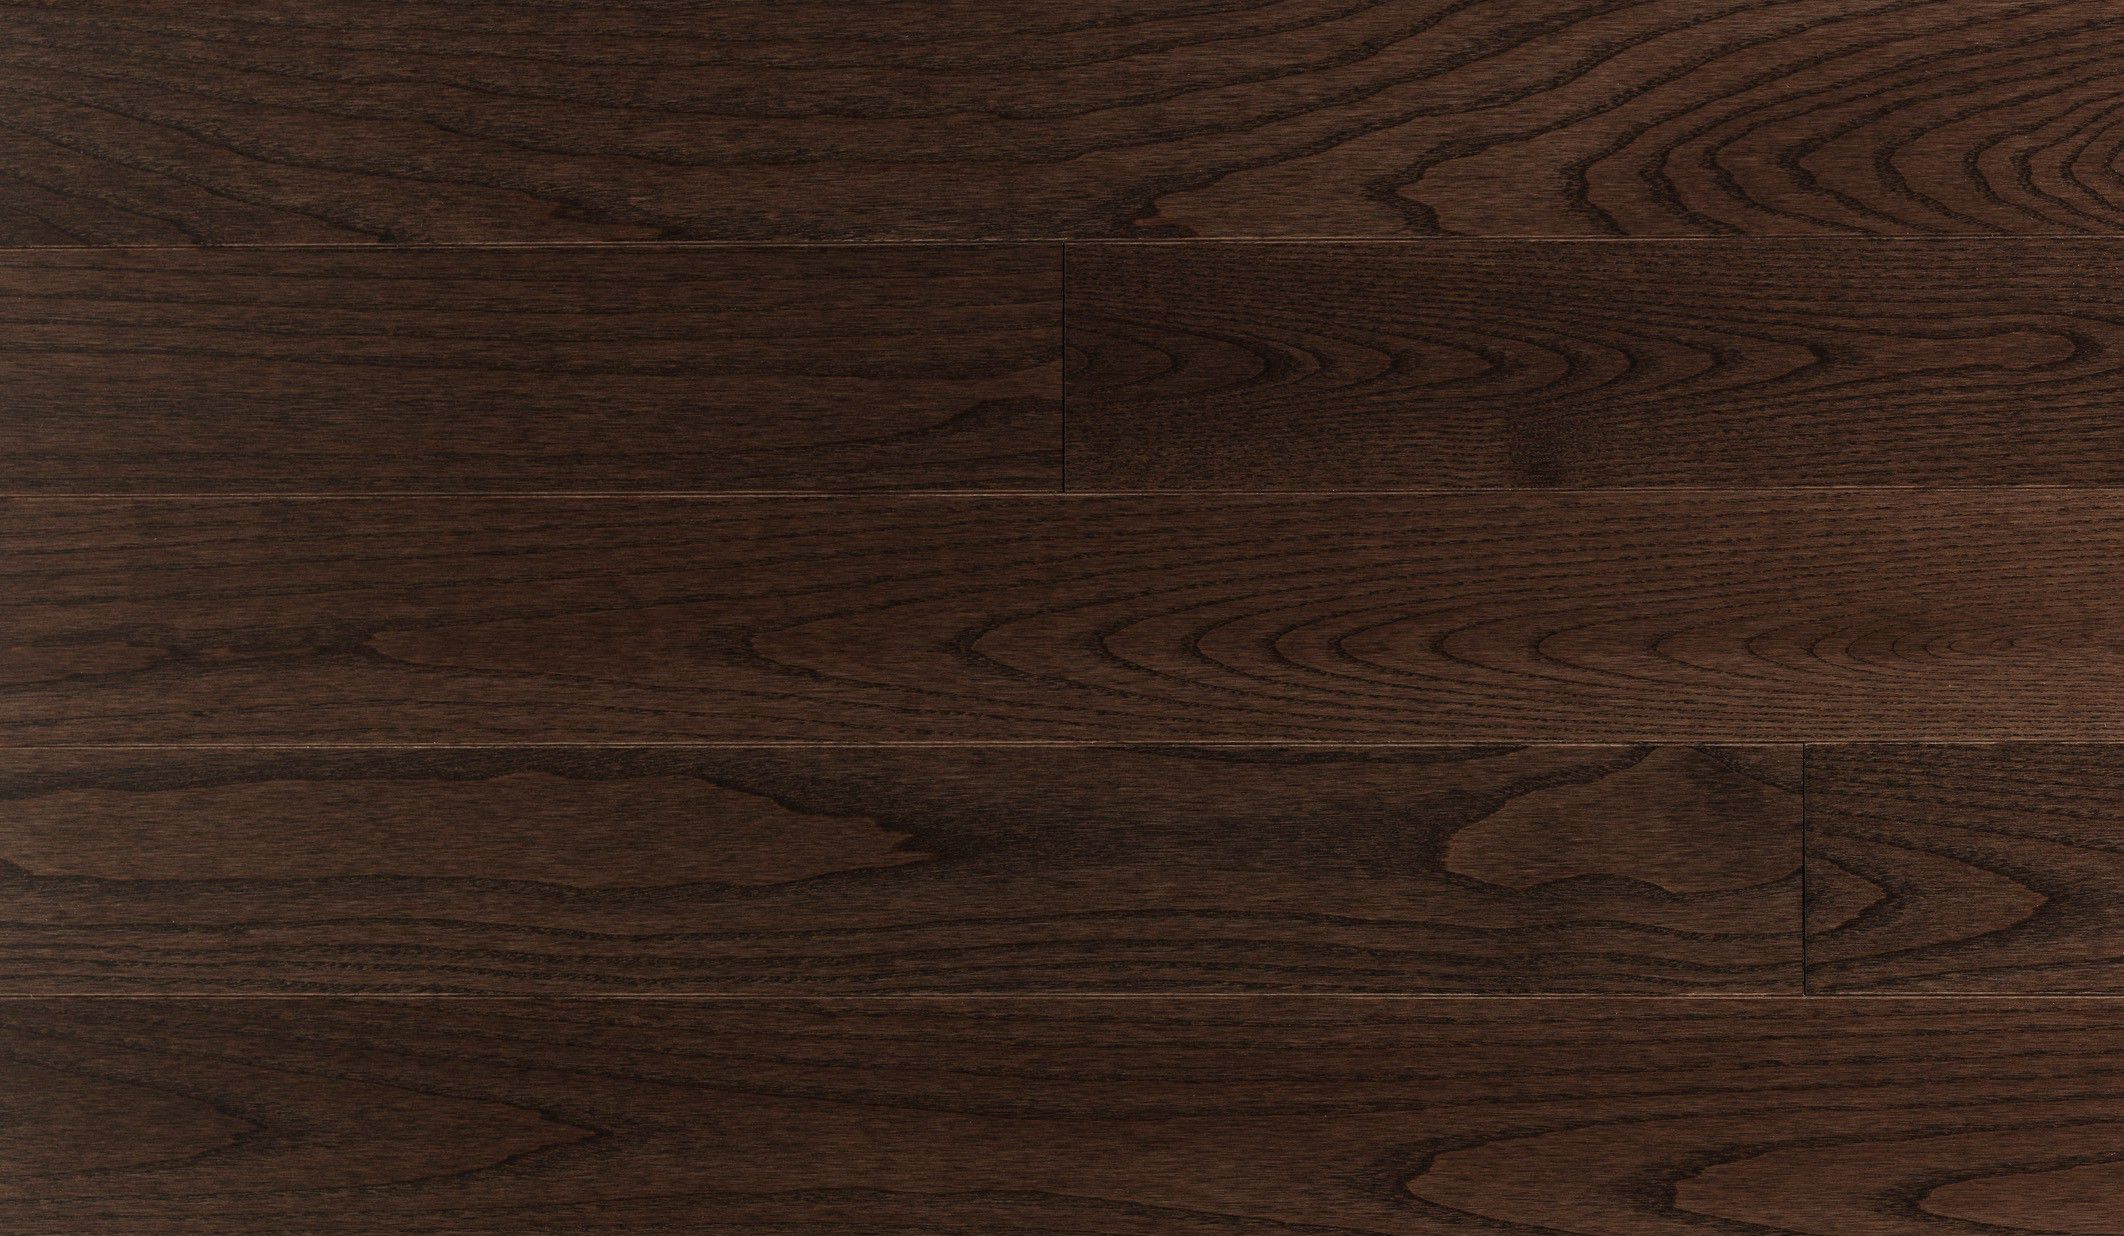 dark wood seamless texture - Google Search | Textures | Pinterest ...